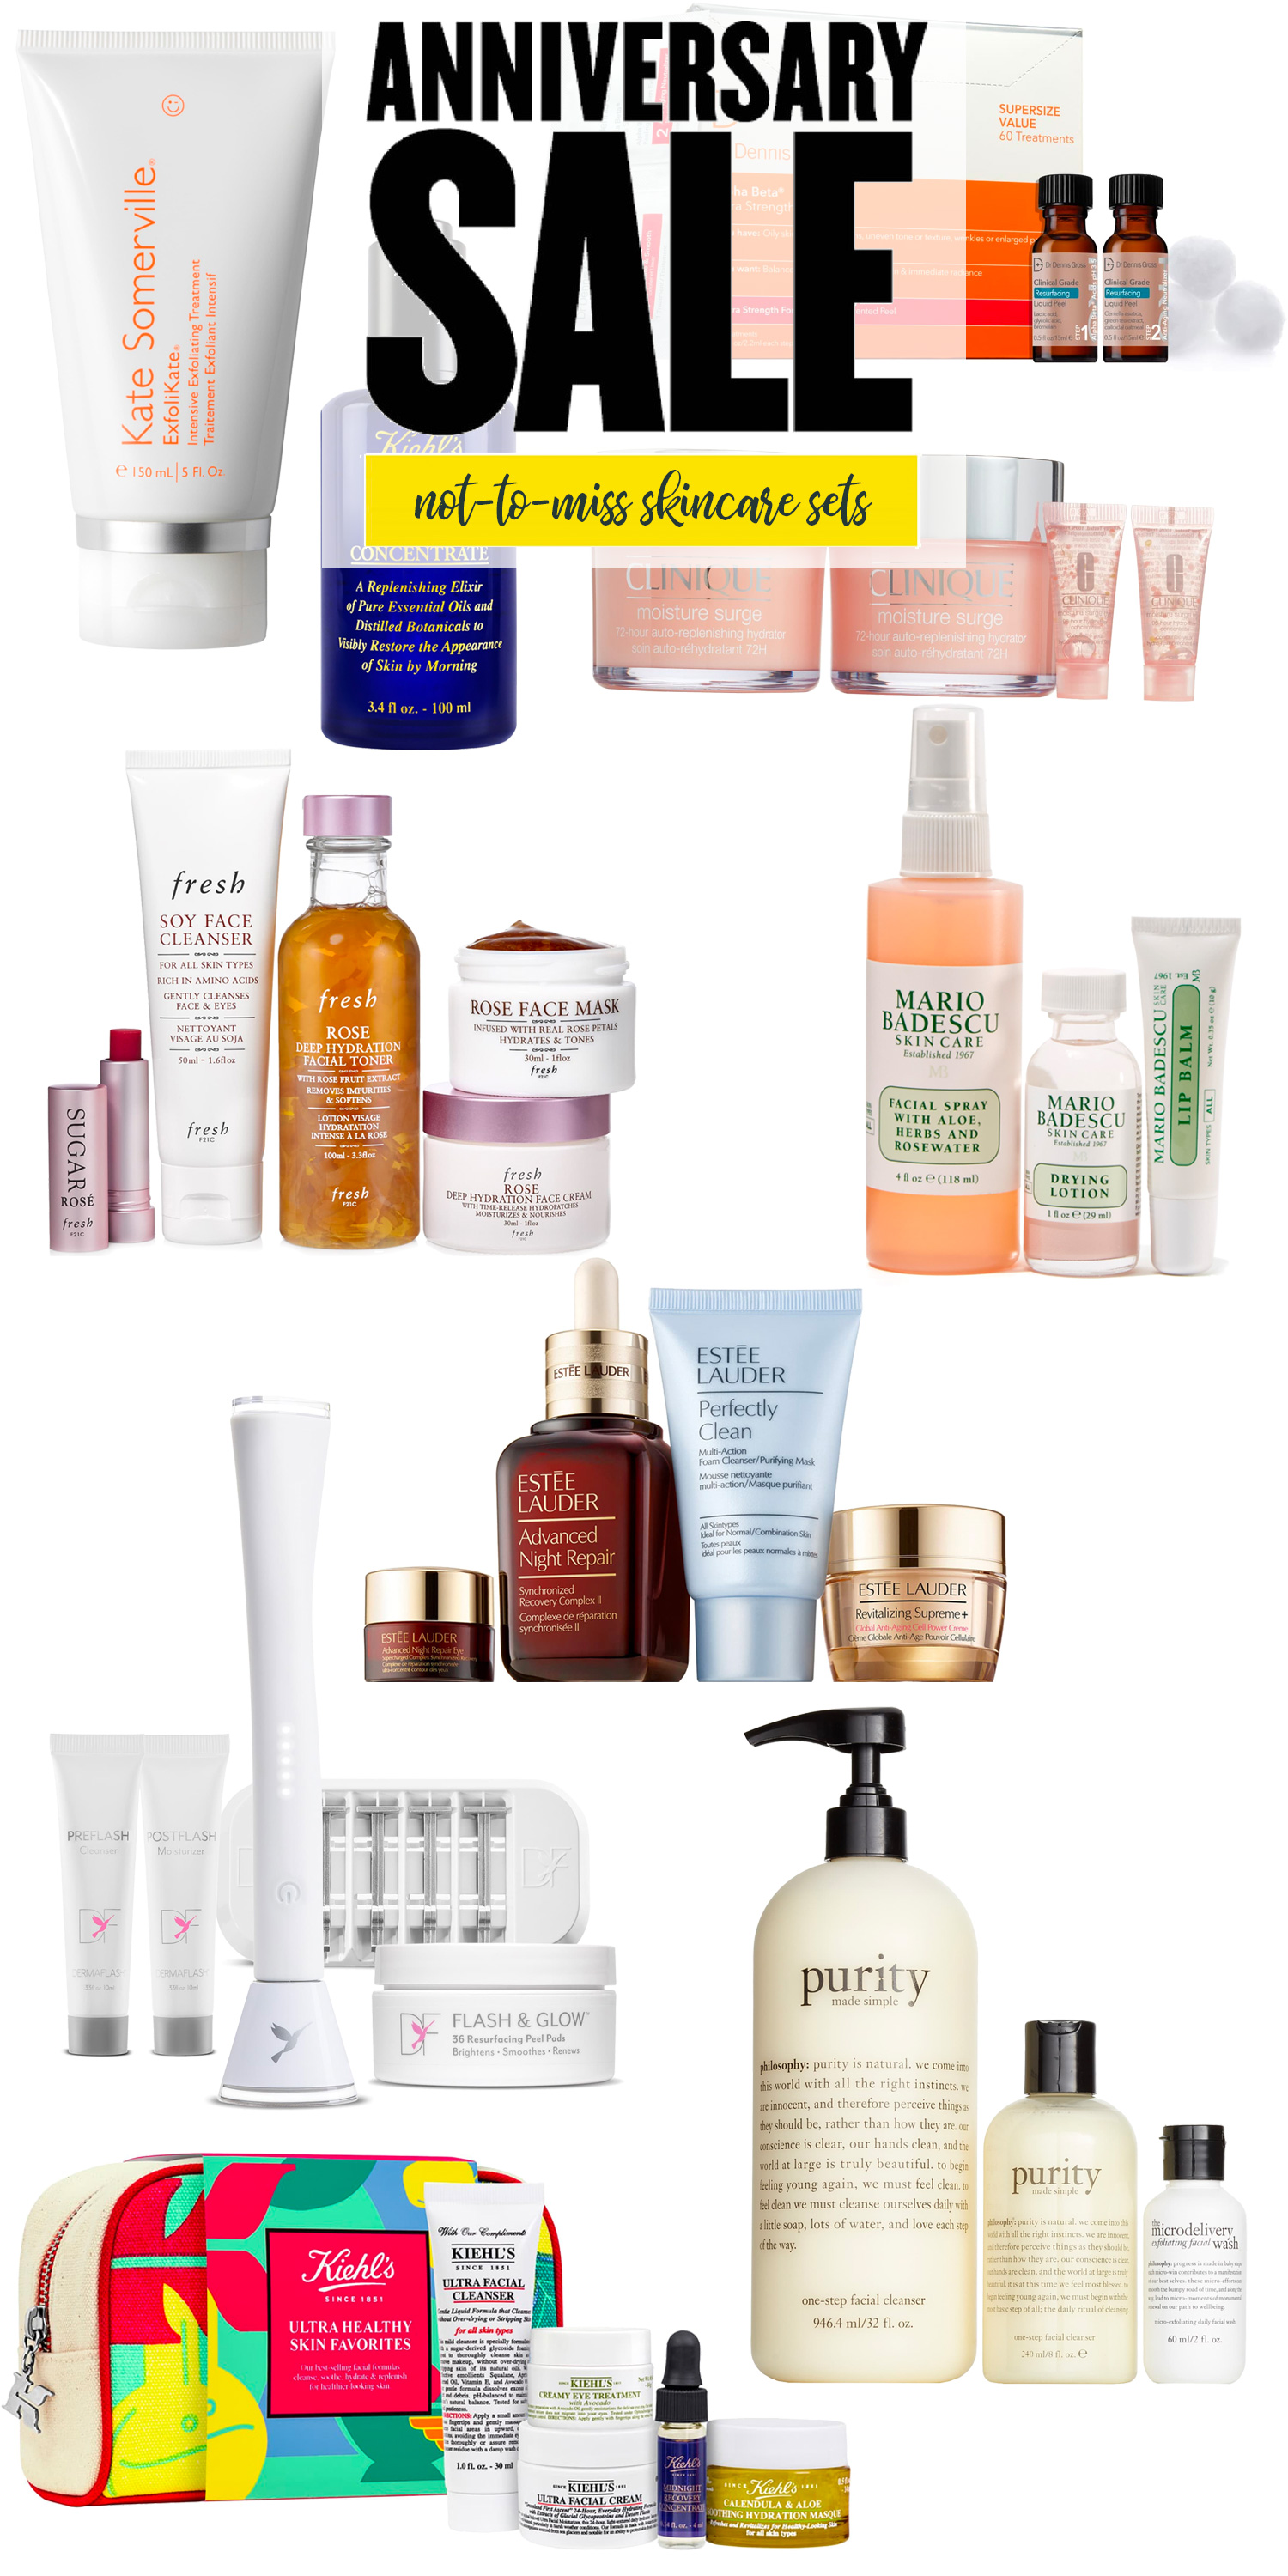 Nordstrom Anniversary Sale 2019: Not to Miss Skincare Exclusives